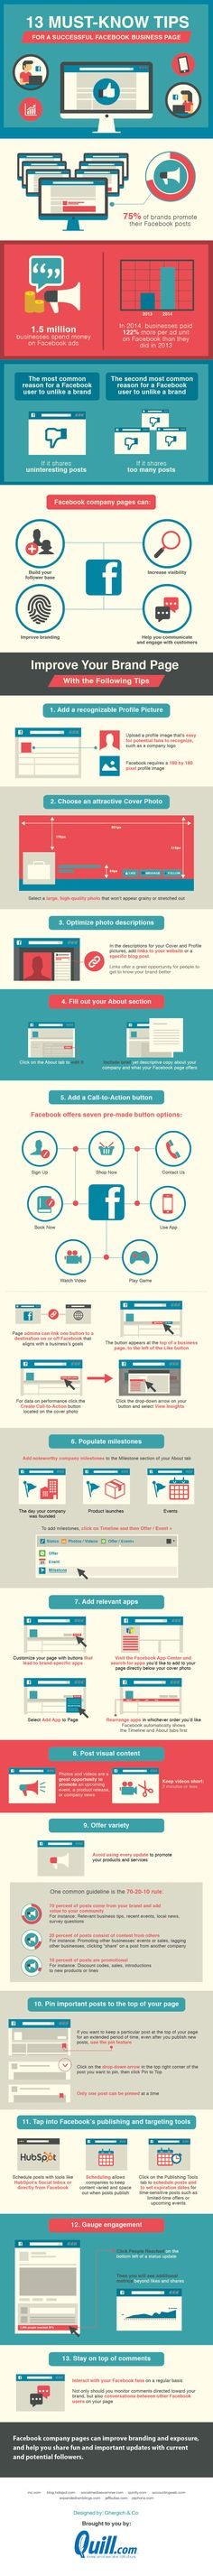 facebook-business-page-tips (1)